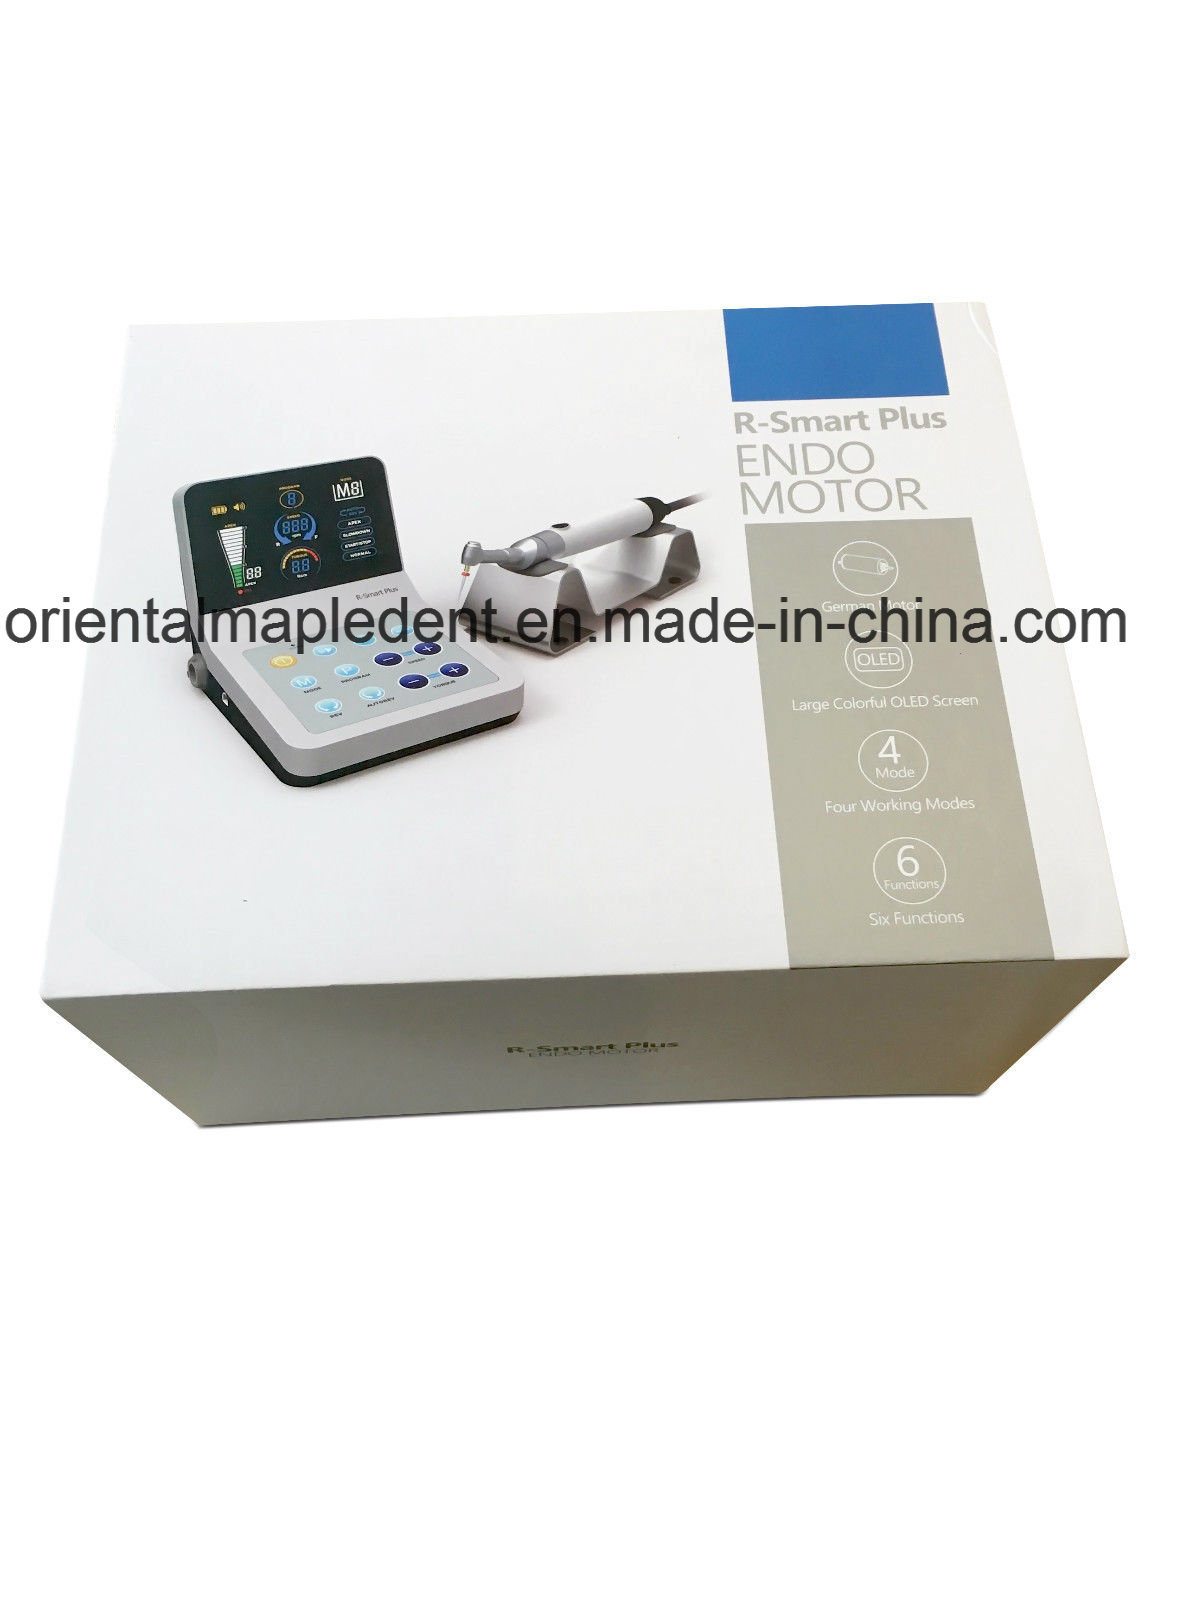 Dental Equipment R Smart Plus Endo Motor with Apex Locator Function